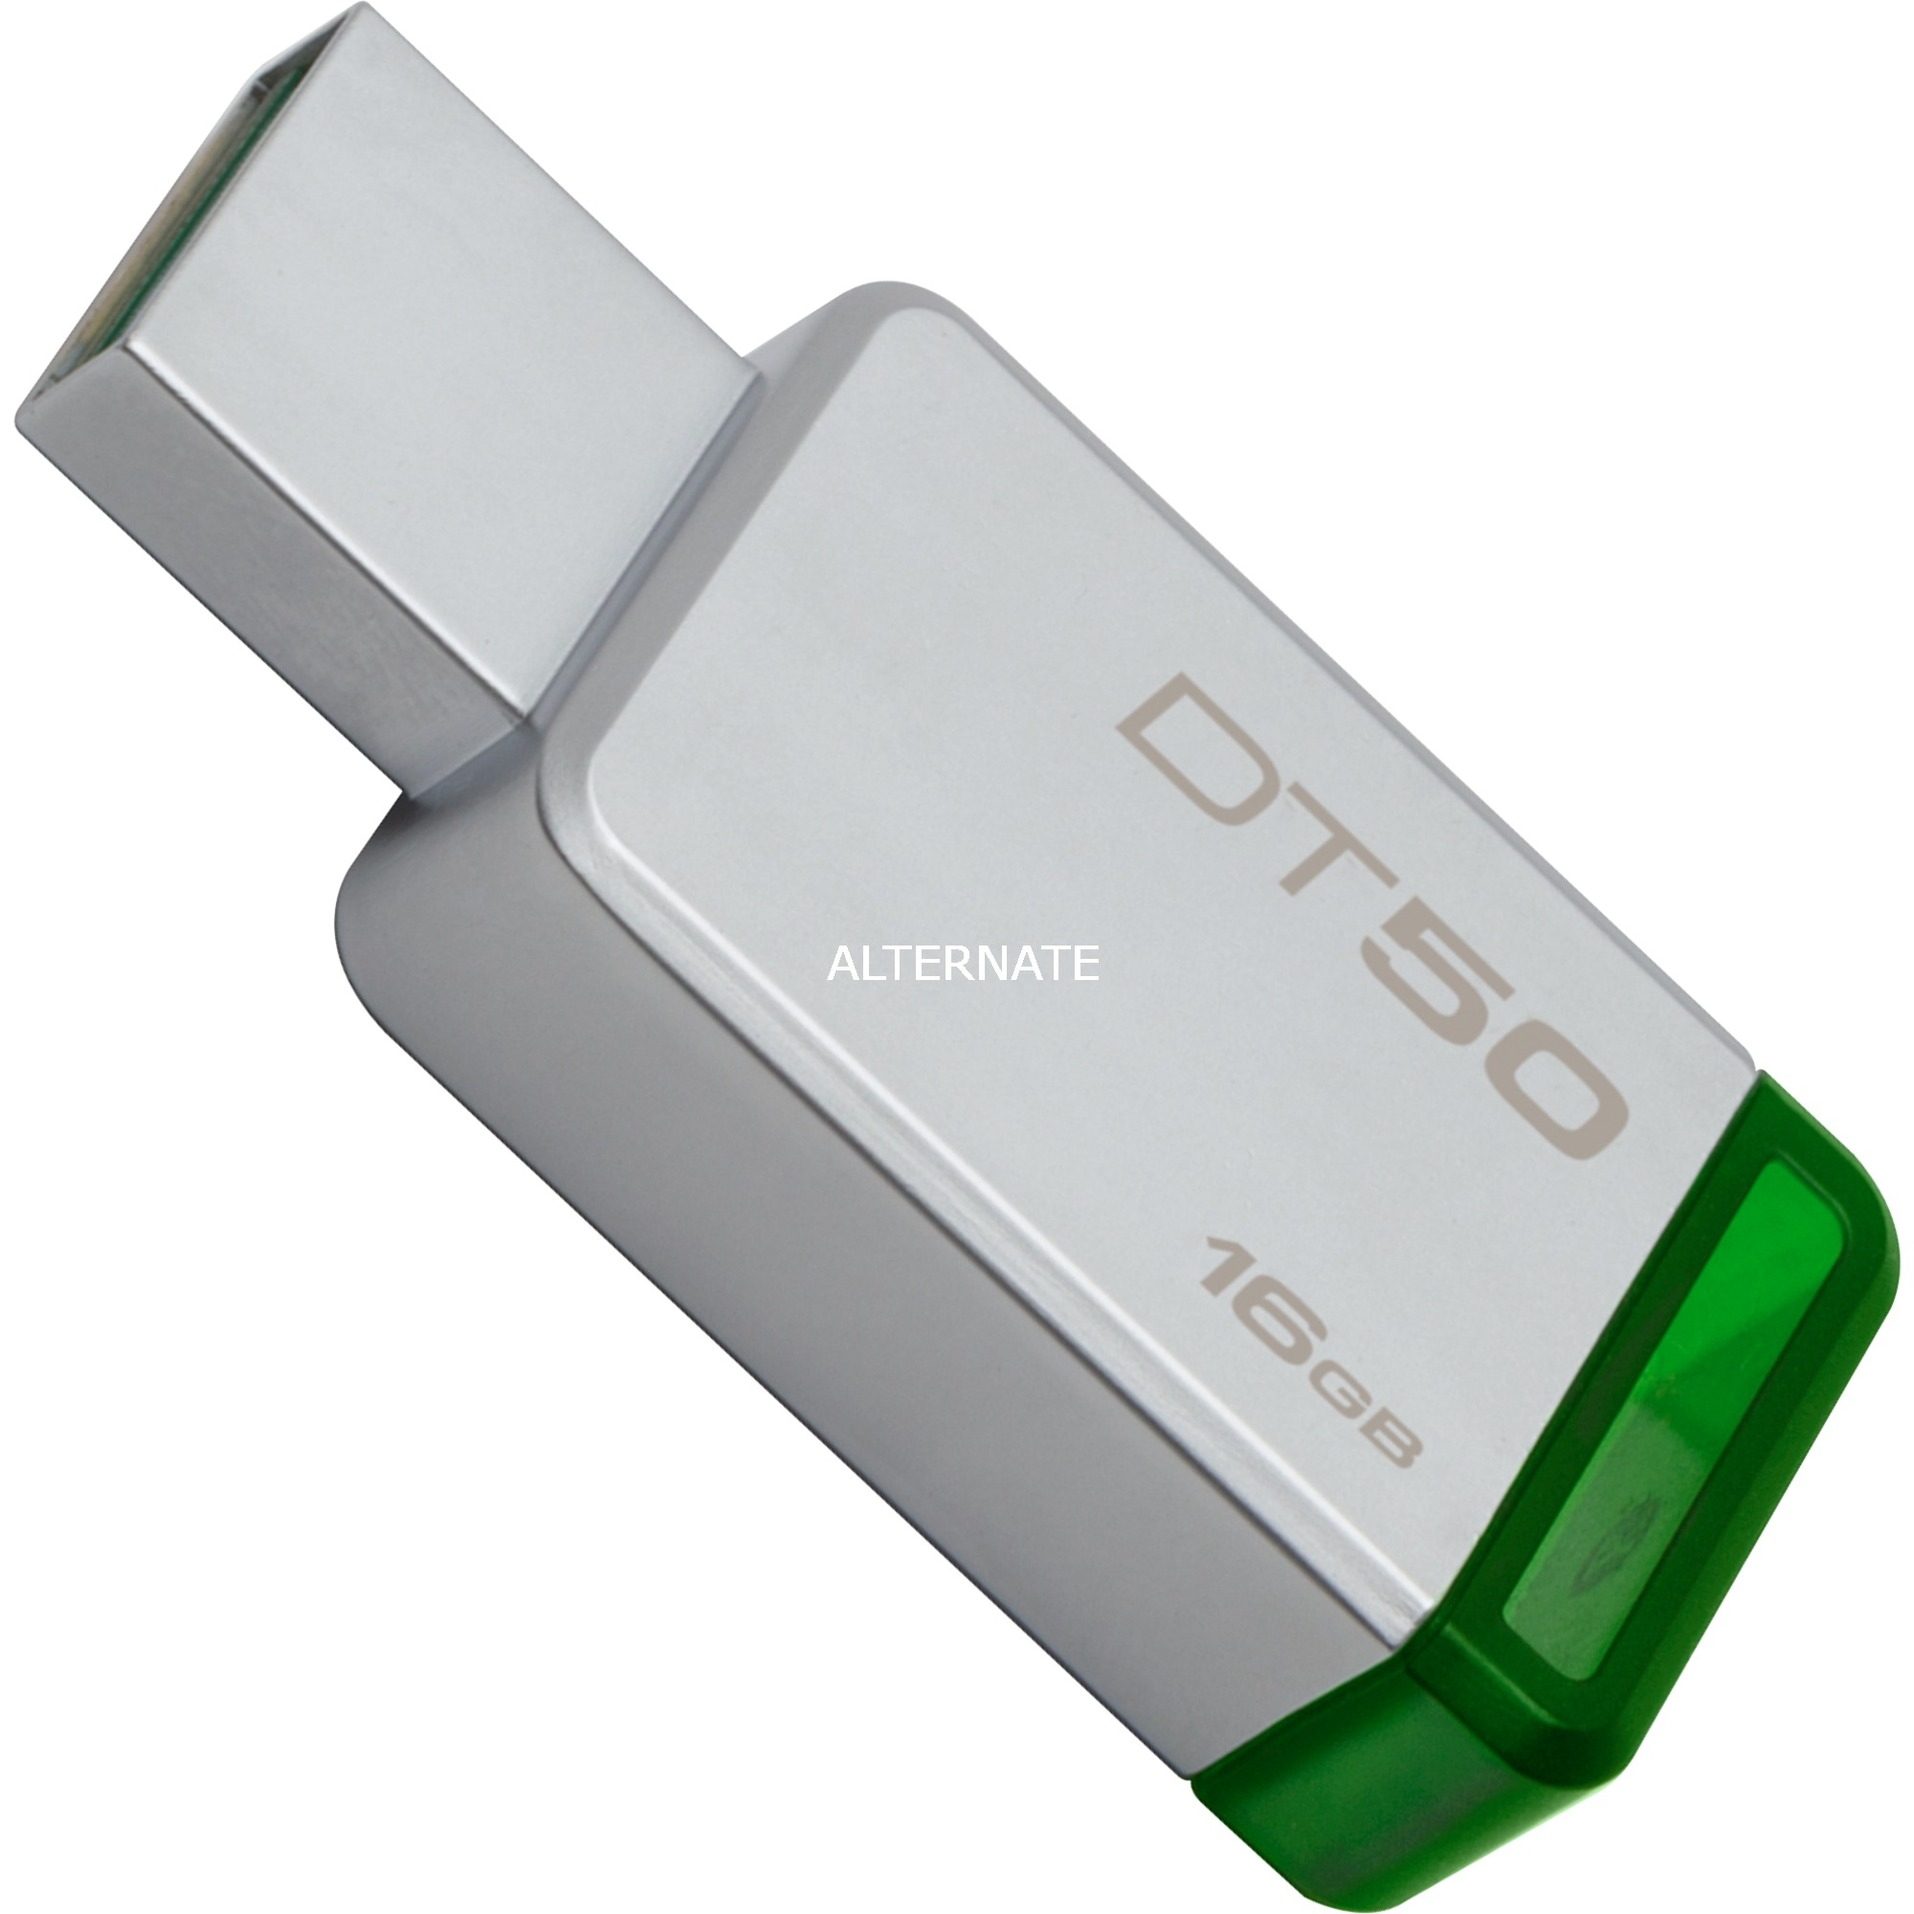 Kingston_DataTraveler_50_16GB_16GB_USB_3_0__3_1_Gen_1__USB_Type_A_connector_Green__Silver_USB_flash_drive__USB_stick@@imel2016